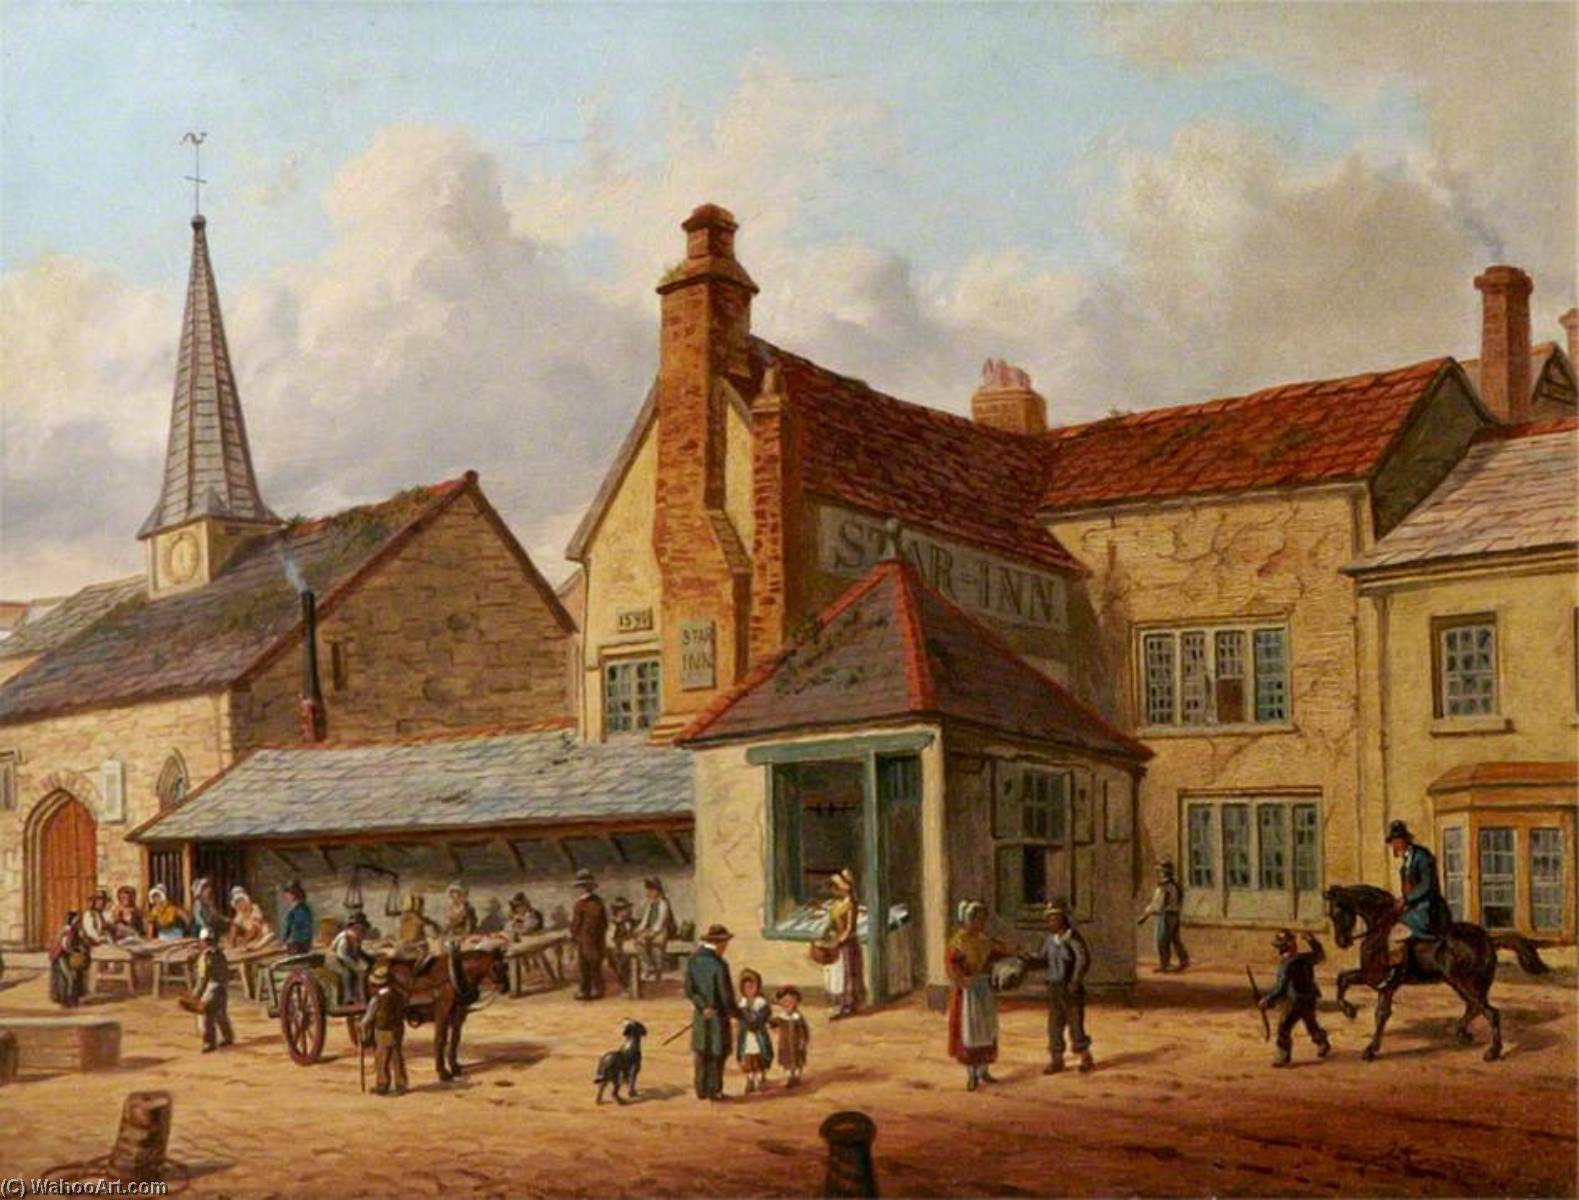 The Fish Shambles, St Nicholas' Chapel and 'The Old Star' Inn, Barnstaple, Devon, Oil On Panel by Joseph Kennedy